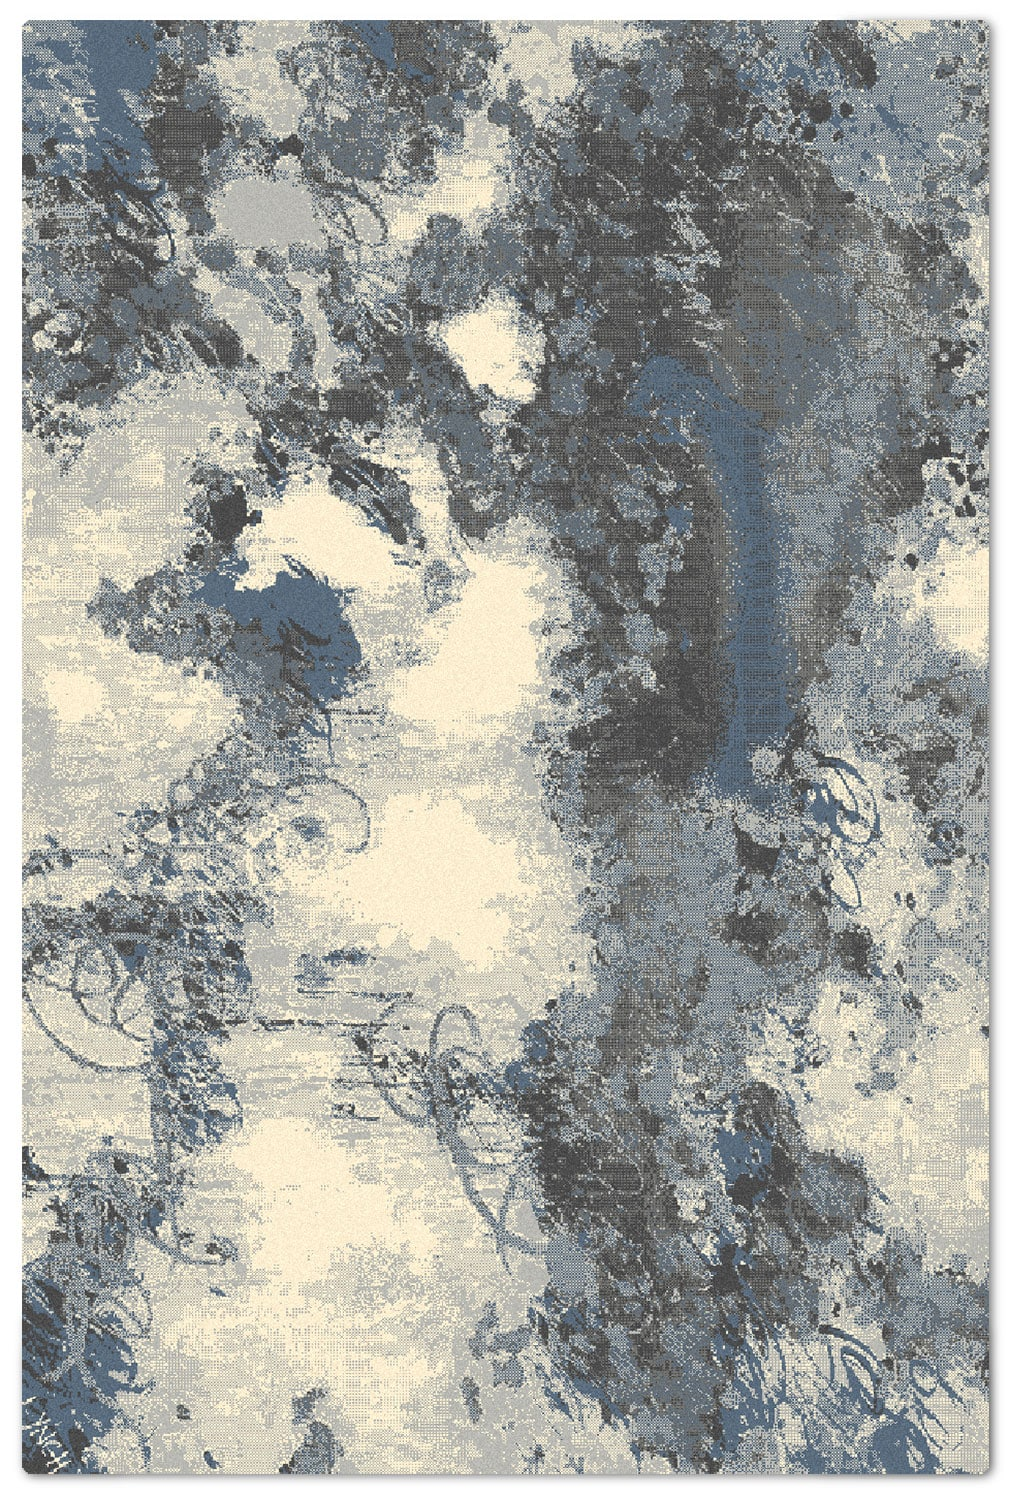 Rugs - Urban Blue 7' x 10' Area Rug - Blue, Grey and White